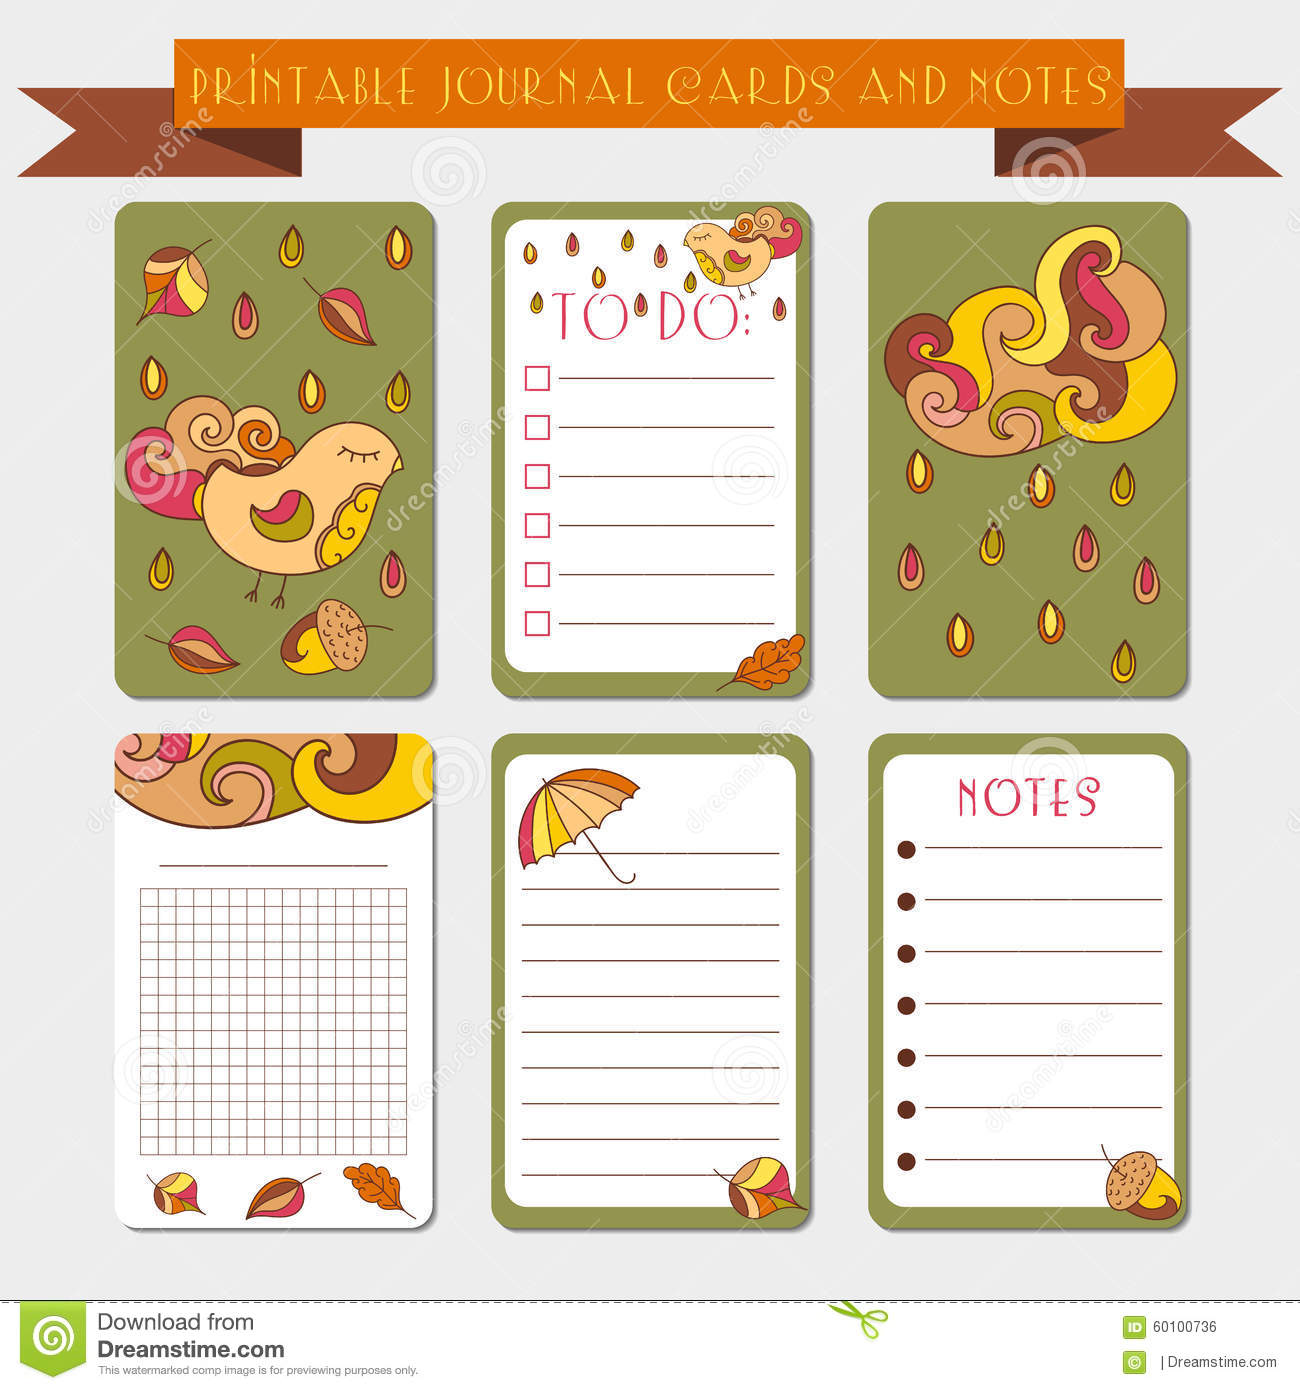 It's just an image of Free Printable Journaling Cards with white